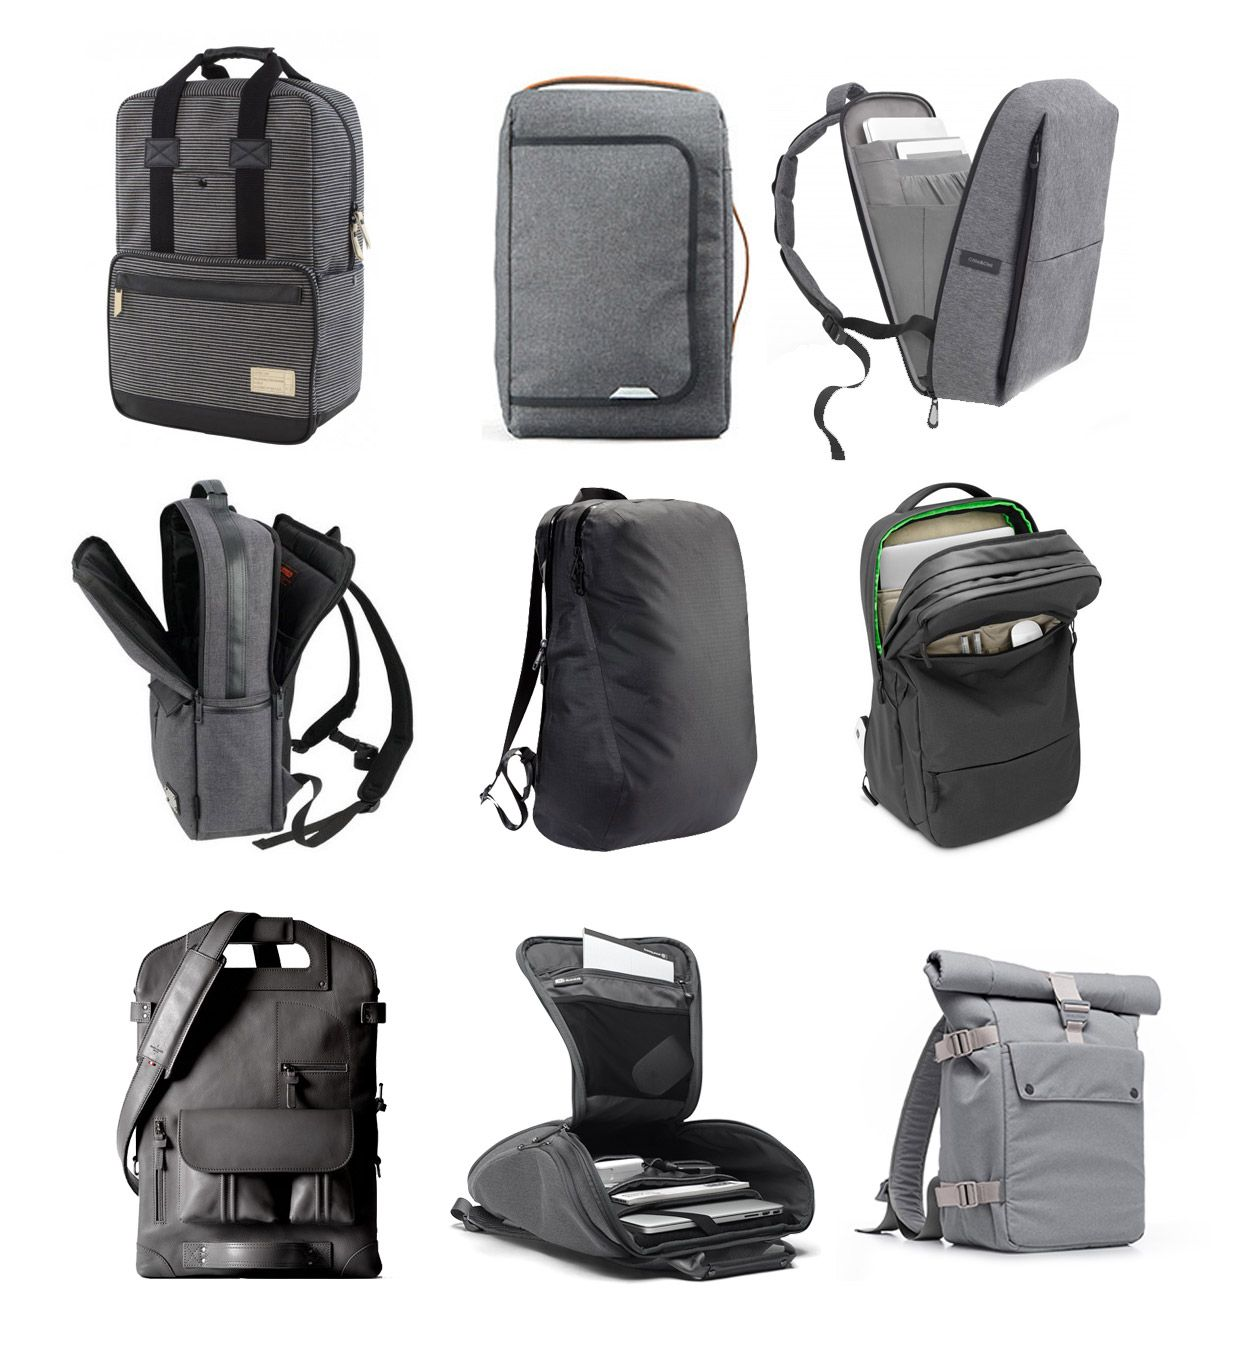 2eeee8d7ec These 9 laptop backpacks combine understated modern aesthetics with padded  protection and storage features for work and travel.